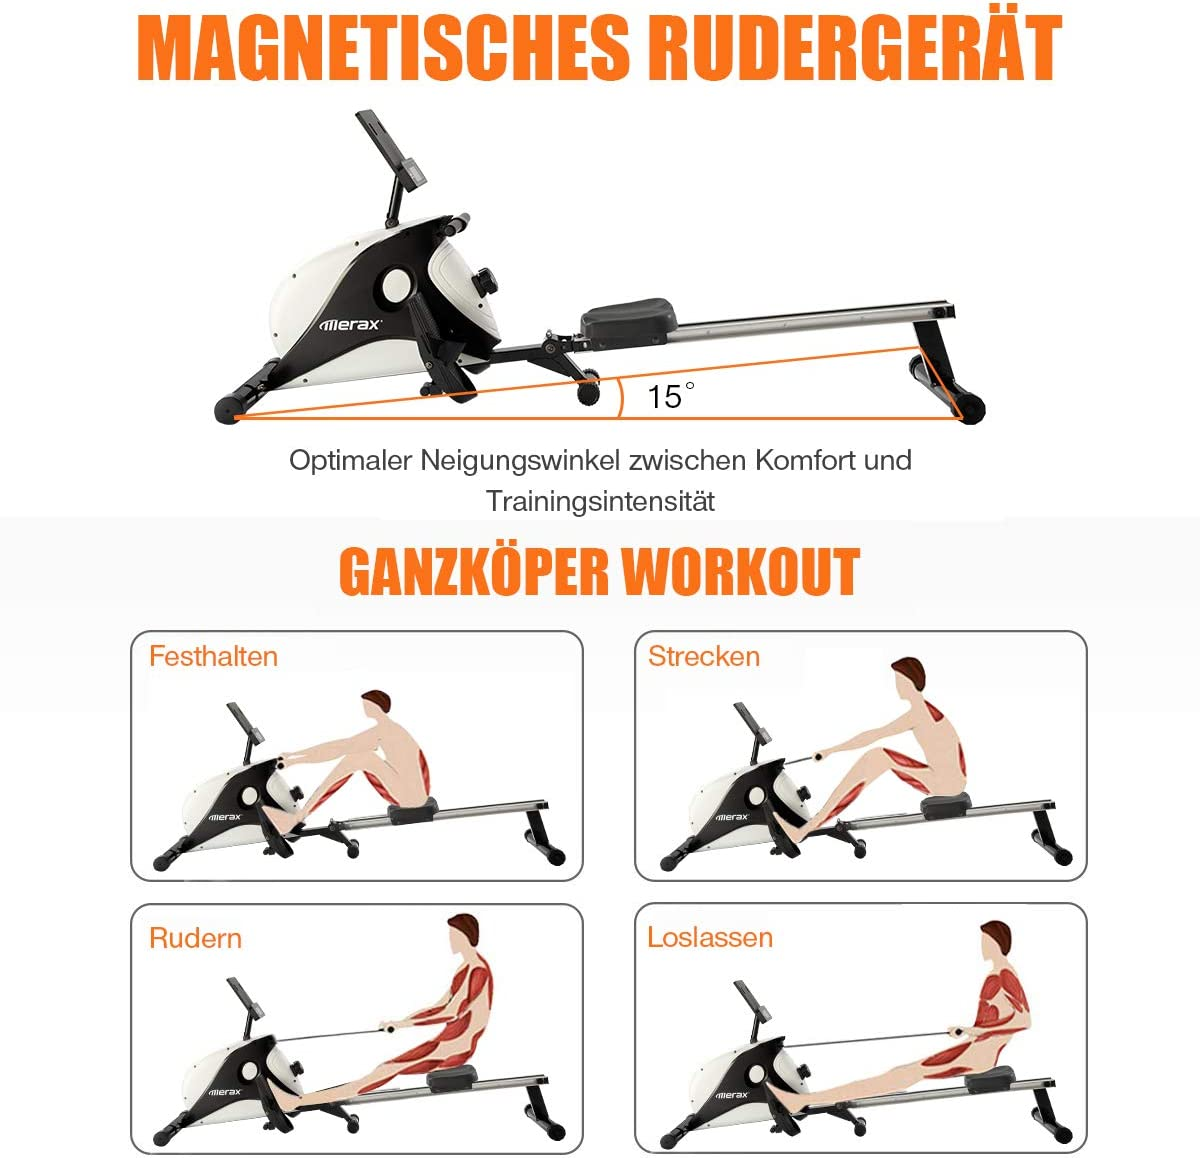 Magnetic Rowing Machines Foldable Indoor 120kg Black 4kg Flyweight and 8 Levels Resistance Adjustment for Home Gym with Magnetic Clamping System DuraB Rowing Machine for Home Use LED Monitor